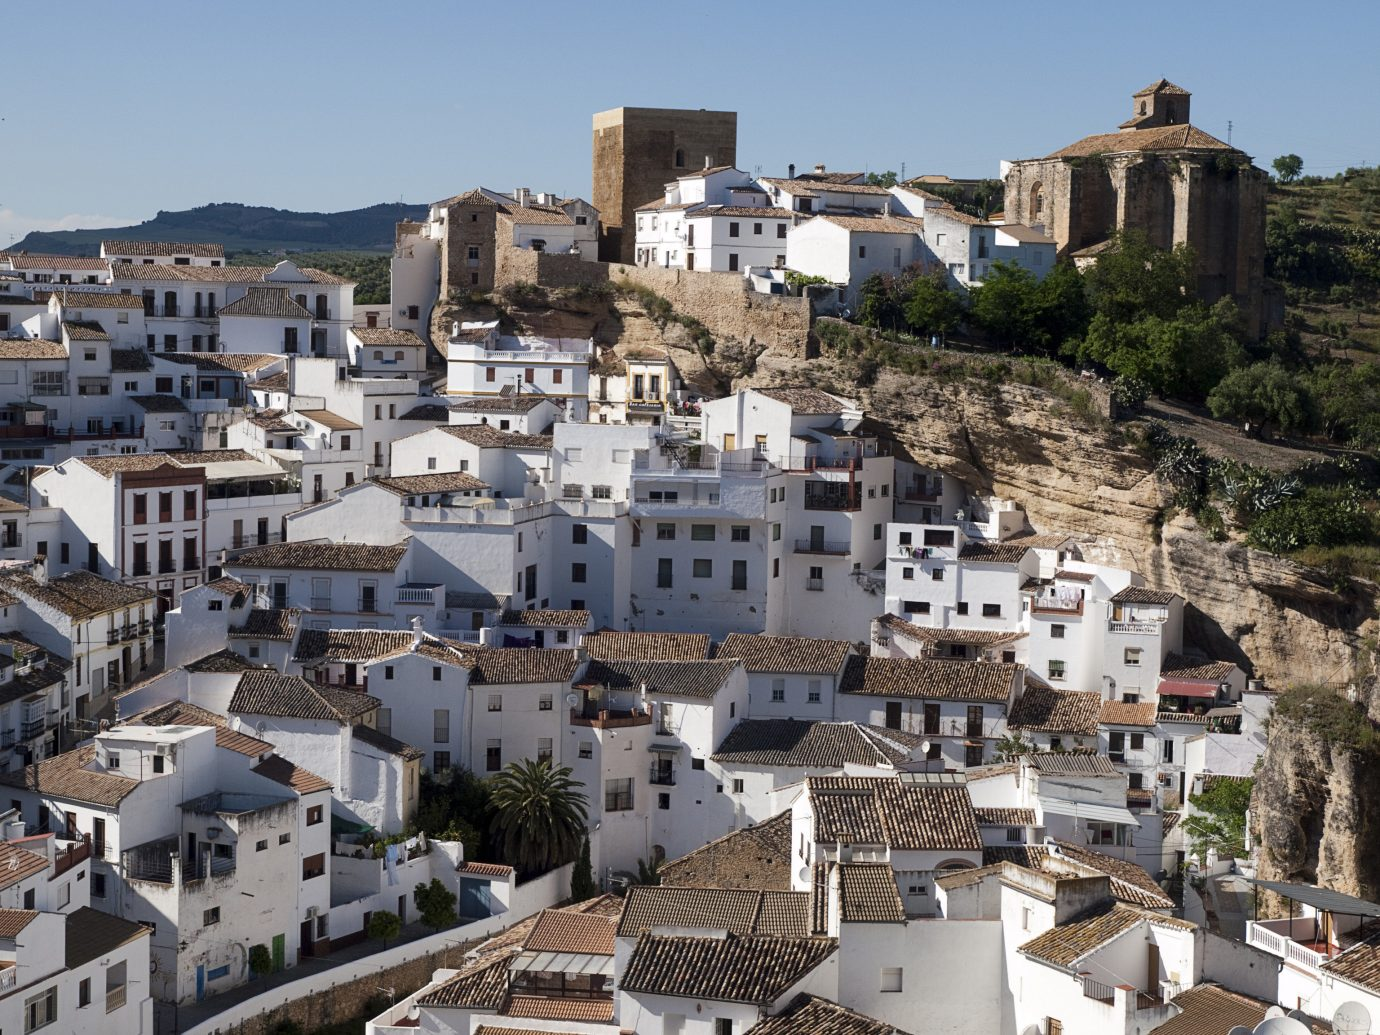 europe Spain Trip Ideas City Town urban area Village sky neighbourhood ancient history roof building tourism historic site mountain village facade